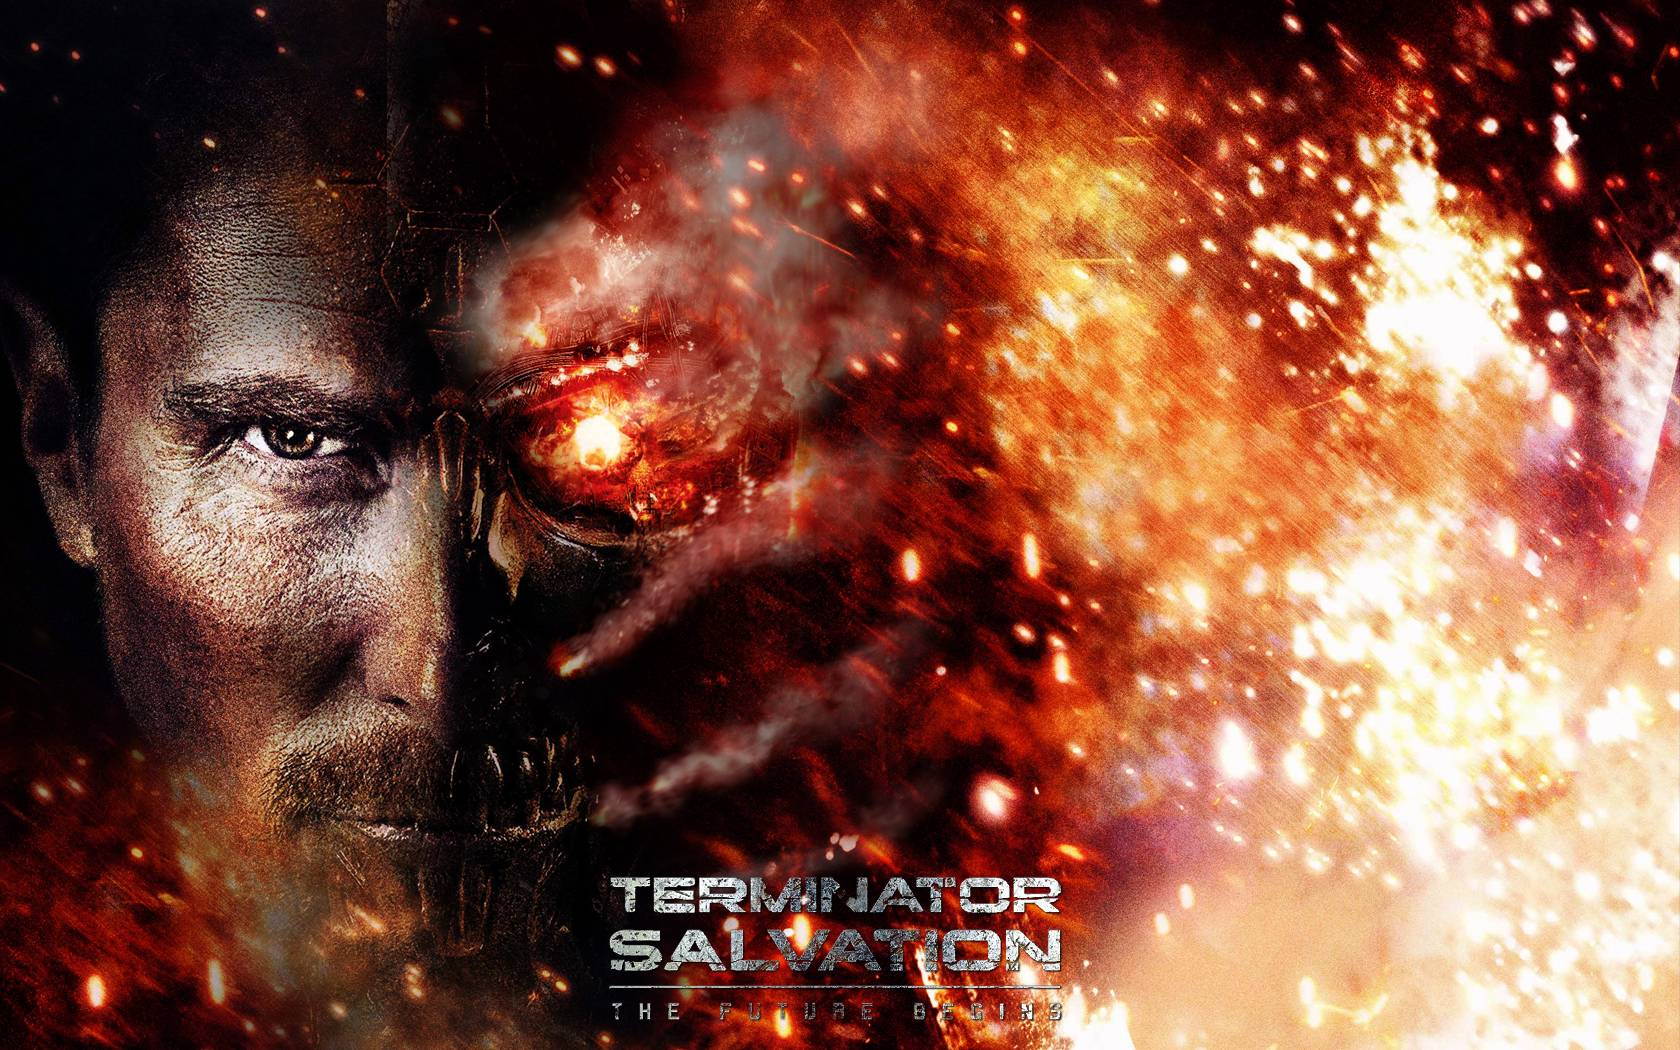 terminator salvation wallpaper hd - photo #5